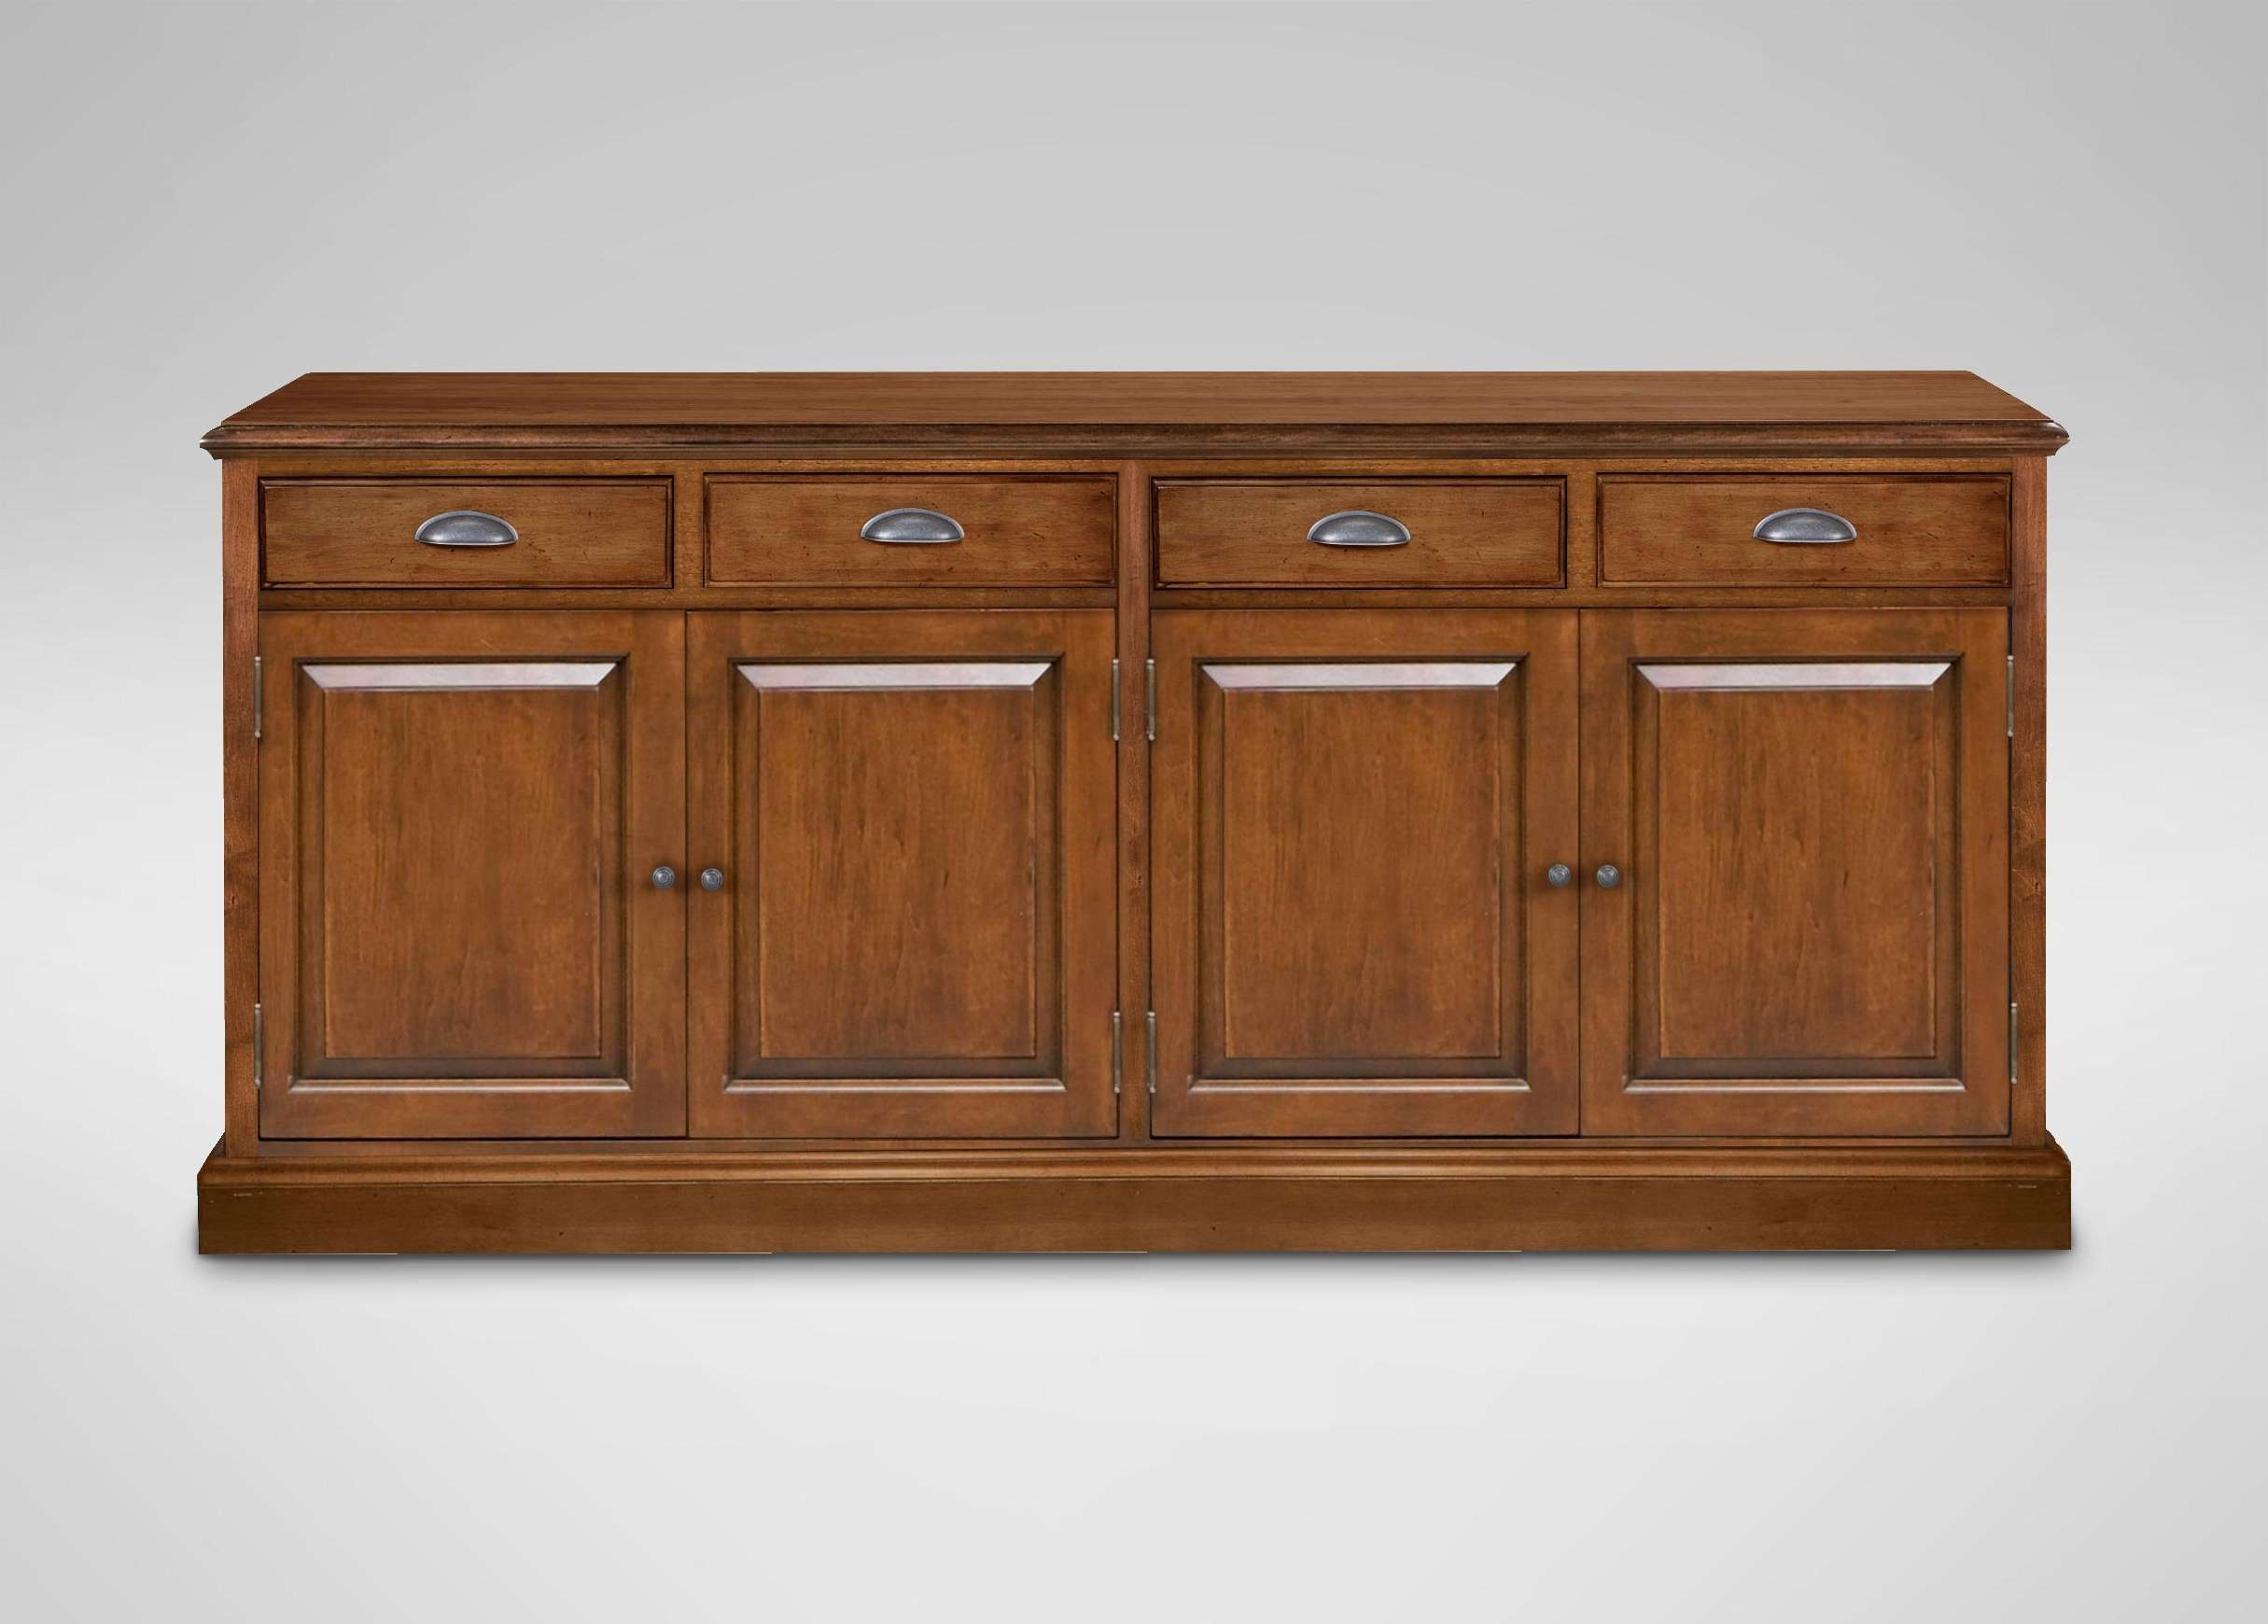 Shop Buffet Storage, Sideboards & Servers | Ethan Allen For Red Sideboards Buffets (View 9 of 20)